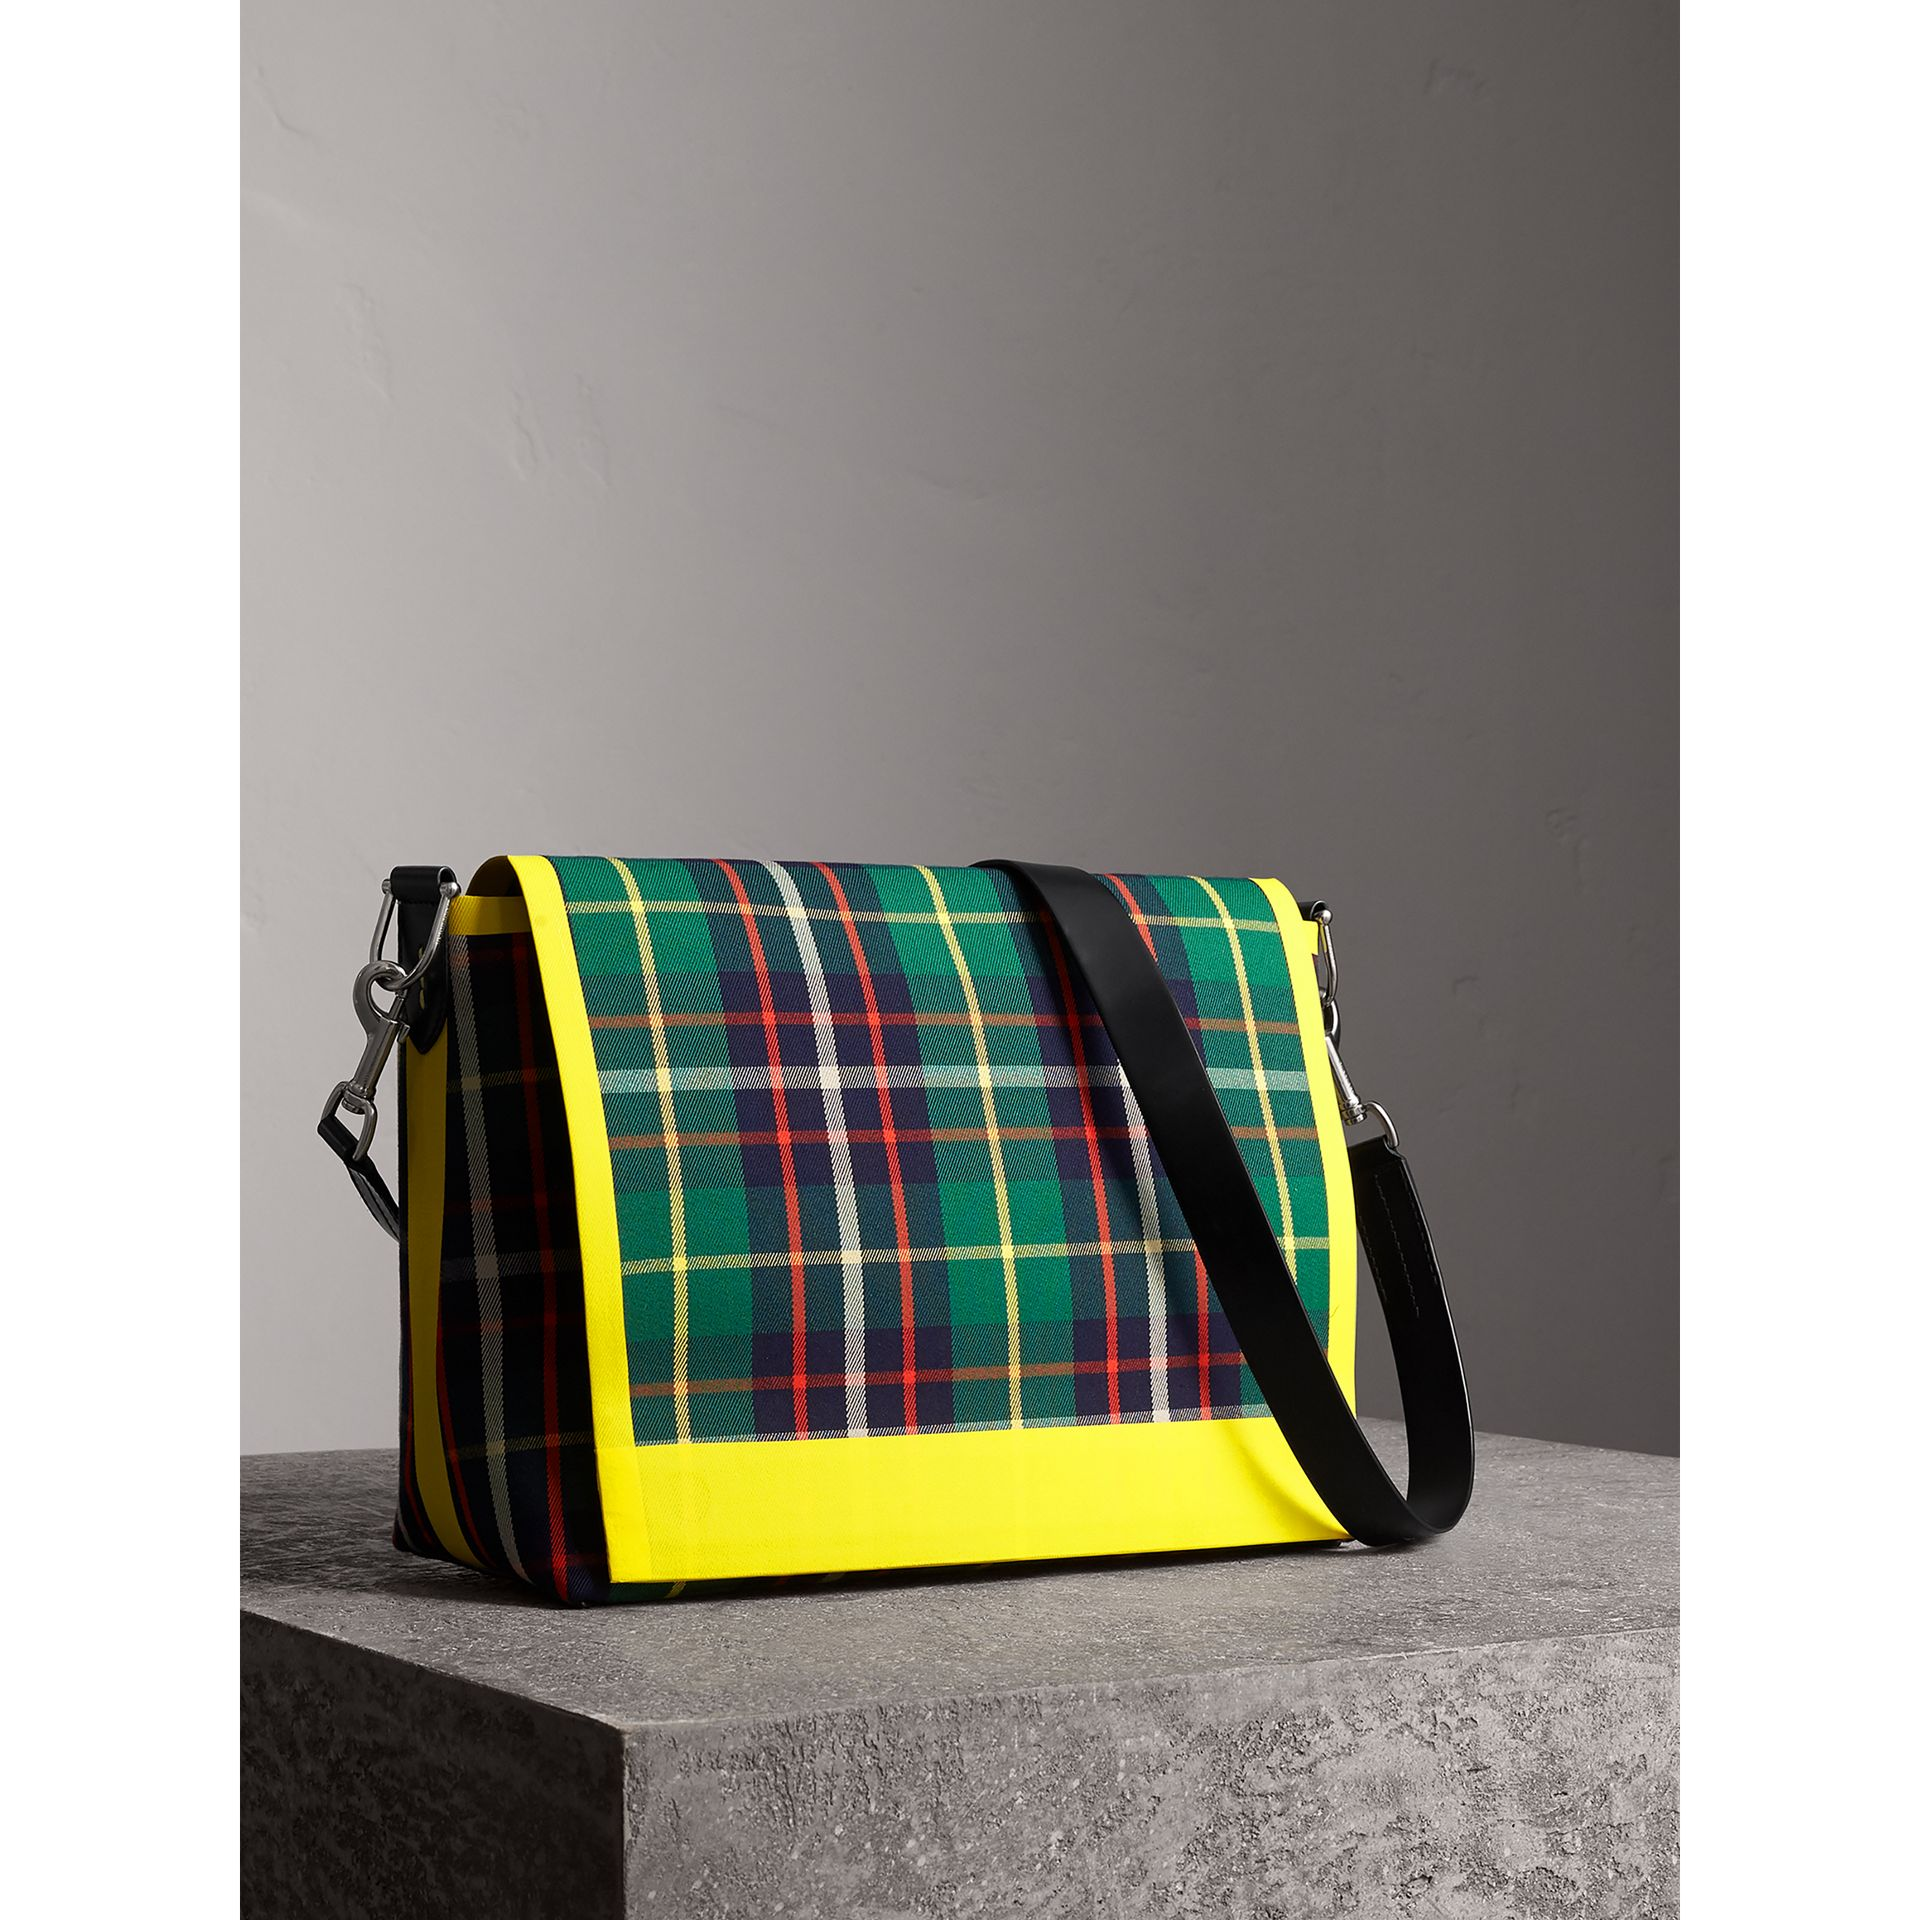 Large Tartan Cotton Messenger Bag in Forest Green  5a4f62fa12419